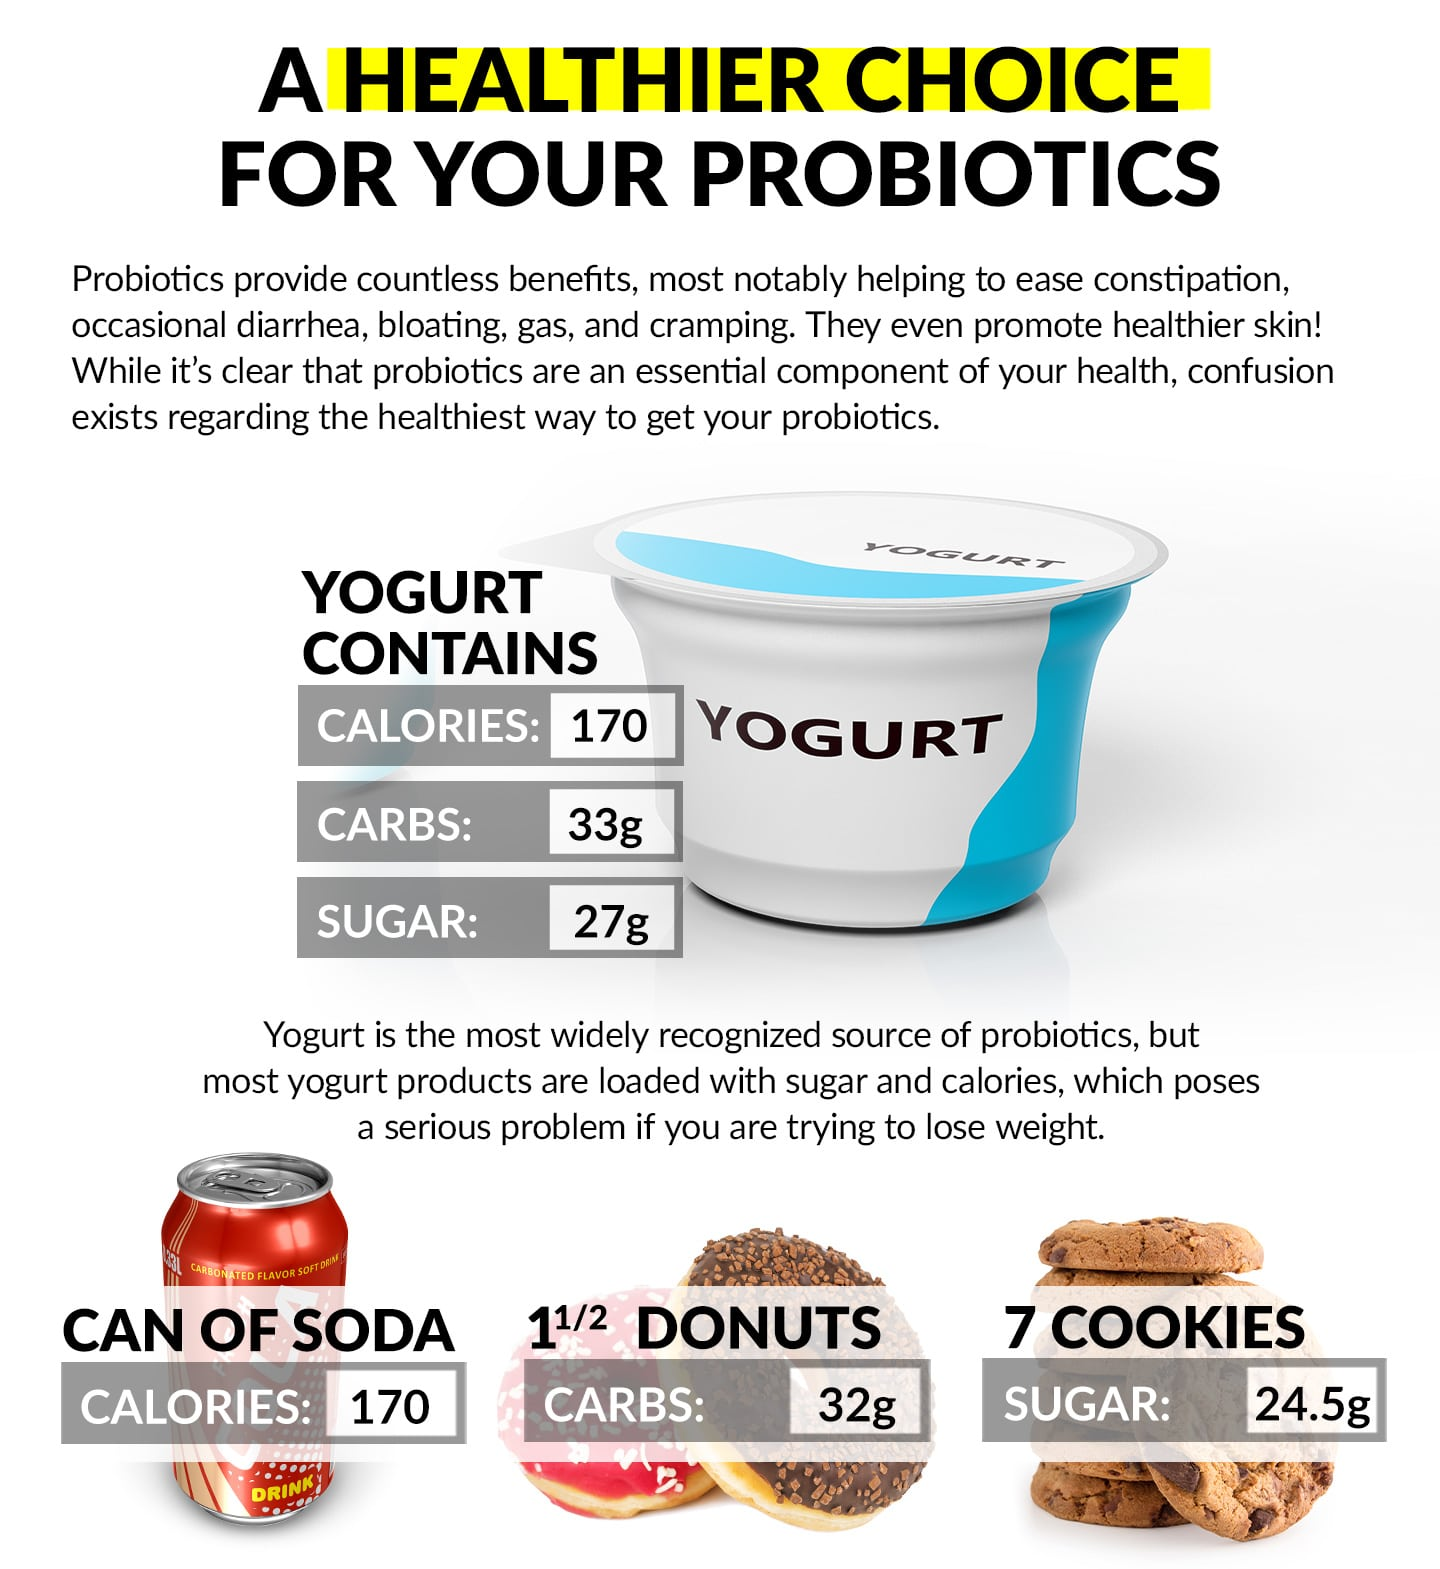 A HEALTHIER CHOICE FOR YOUR PROBIOTICS. Probiotics provide countless benefits, most notably helping to ease constipation, occasional diarrhea, bloating, gas, and cramping. They even promote healthier skin! While it's clear that probiotics are an essential component of your health, confusion exists regarding the healthiest way to get your probiotics. YOGURT CONTAINS: Calories: 170, Carbs: 33g, Sugar: 27g. Yogurt is the most widely recognized source of probiotics, but most yogurt products are loaded with sugar and calories, which poses a serious problem if you are trying to lose weight. Can of Soda: Calories: 140, 1 ½ Donuts: Carbs: 32g, 7 Cookies: Sugar: 24.5g